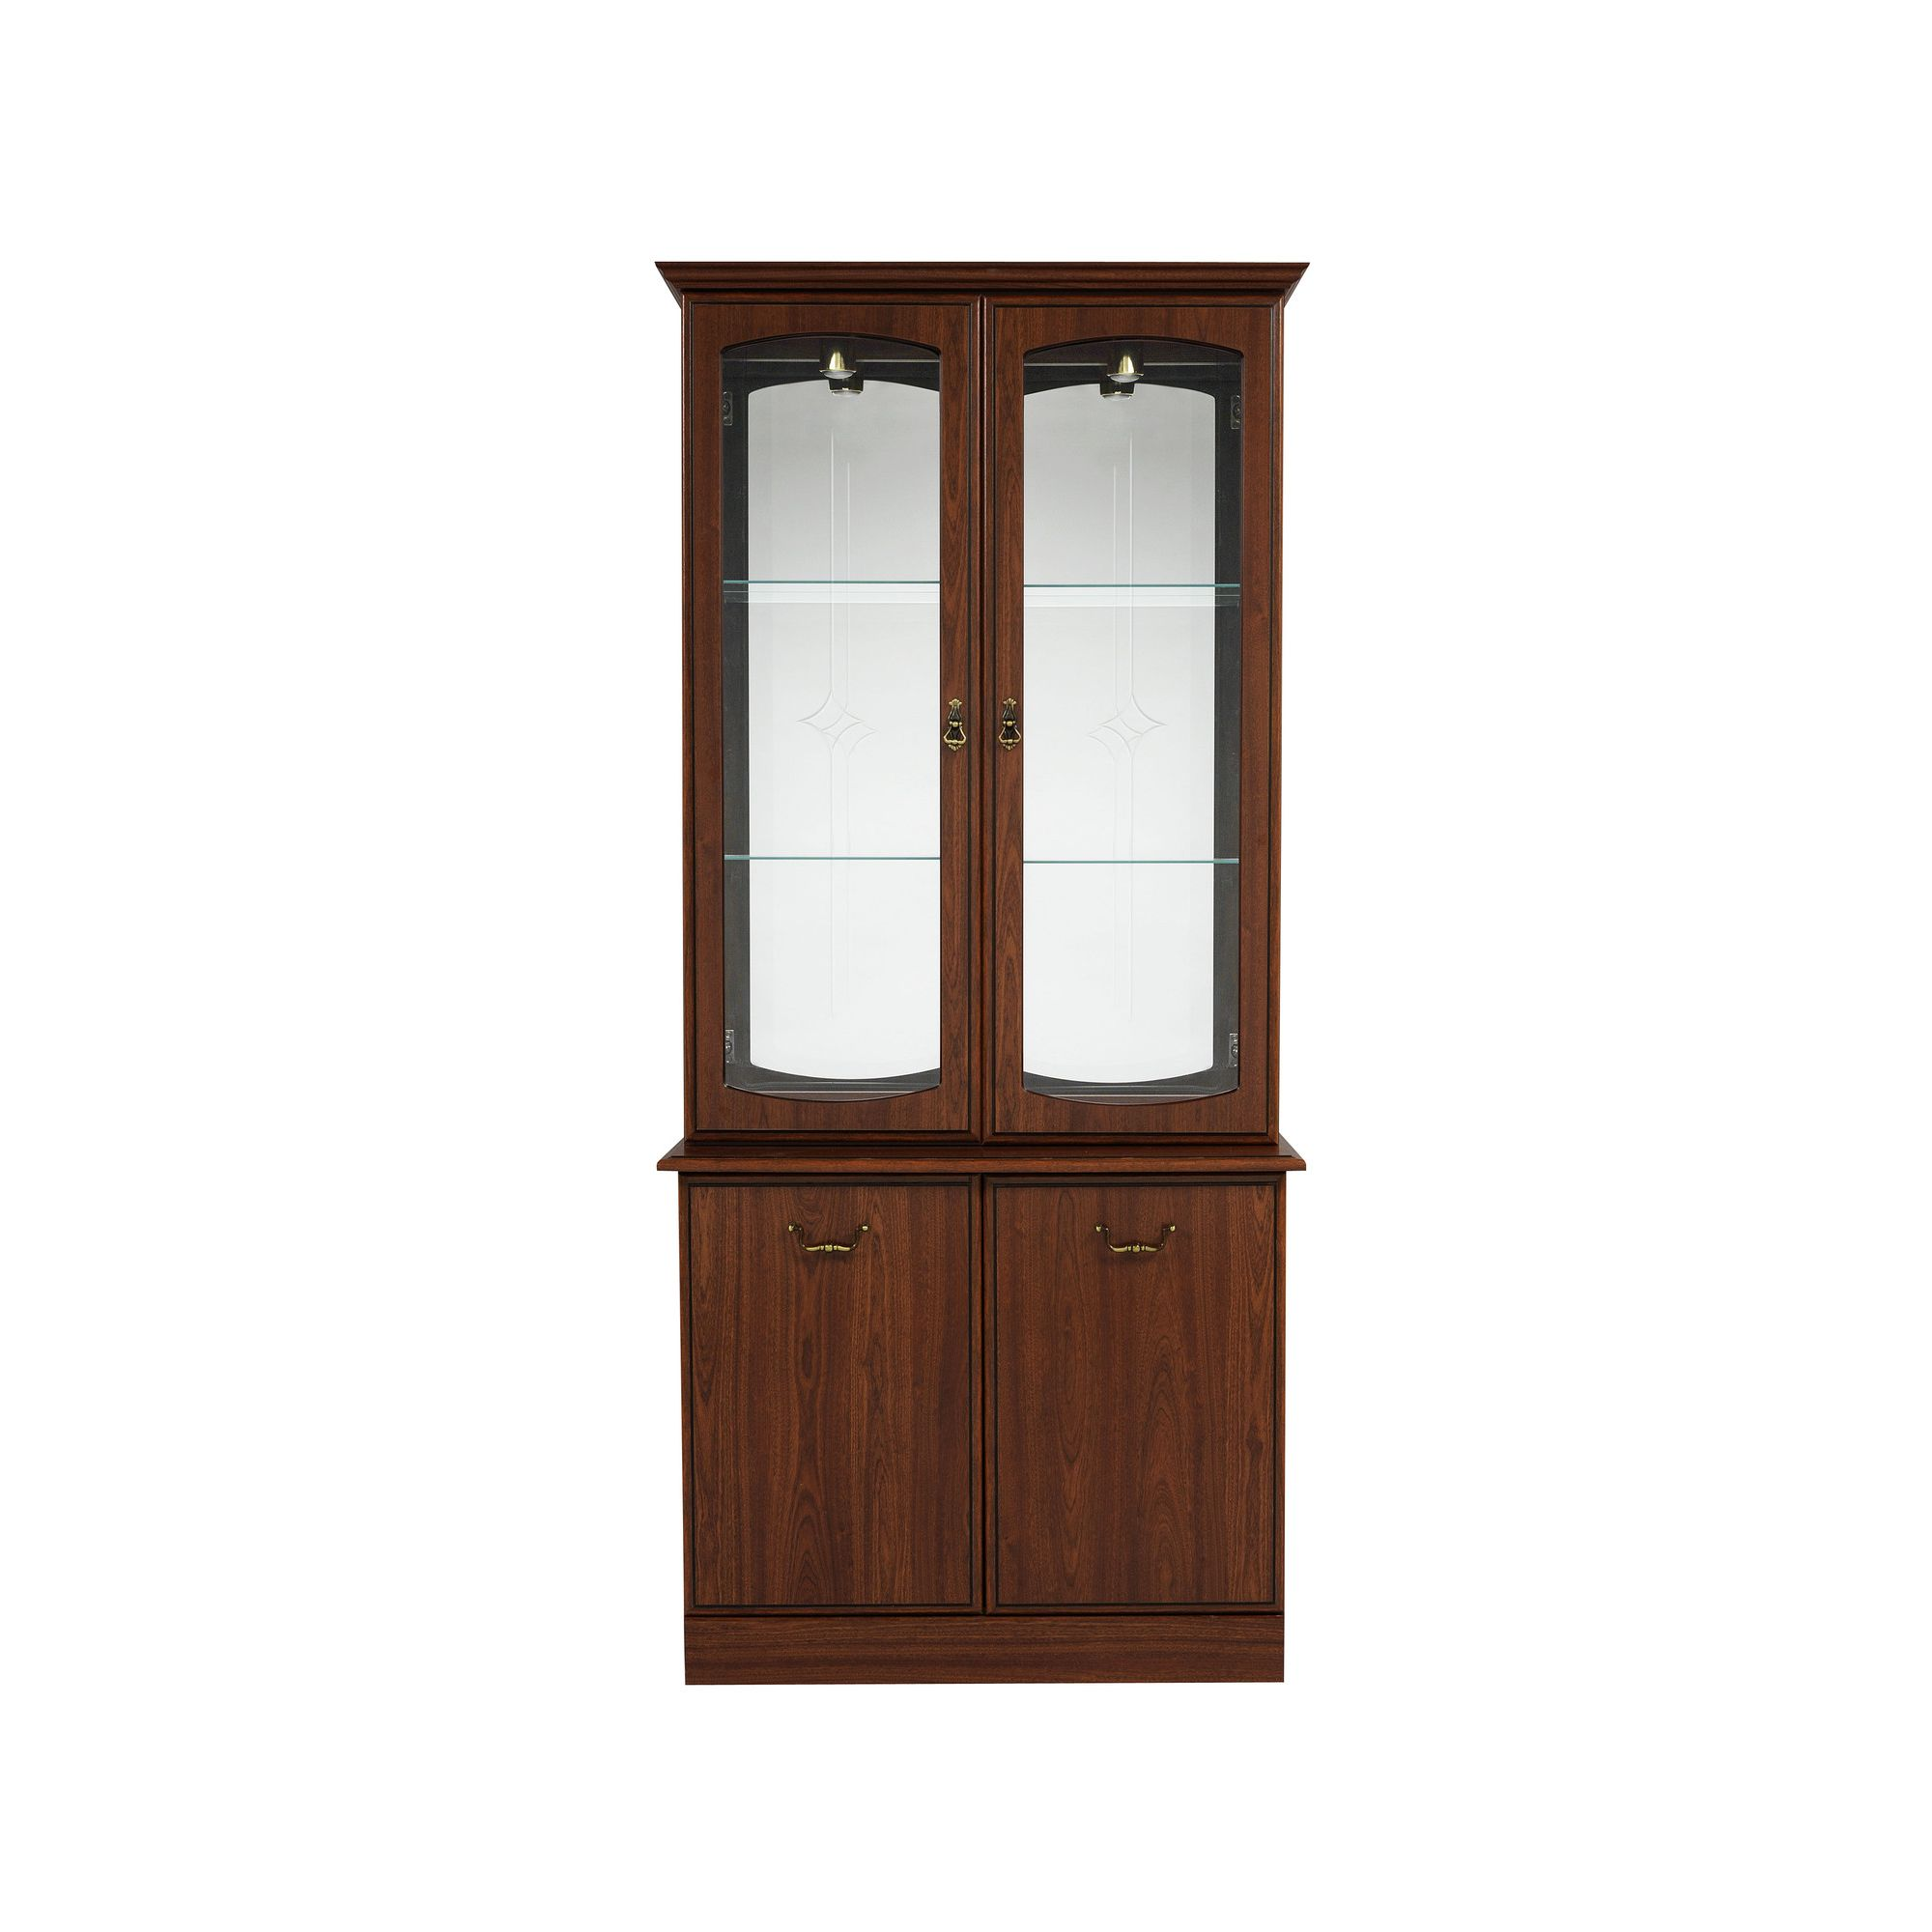 Caxton Byron 91 cm Display Cabinet in Mahogany at Tesco Direct